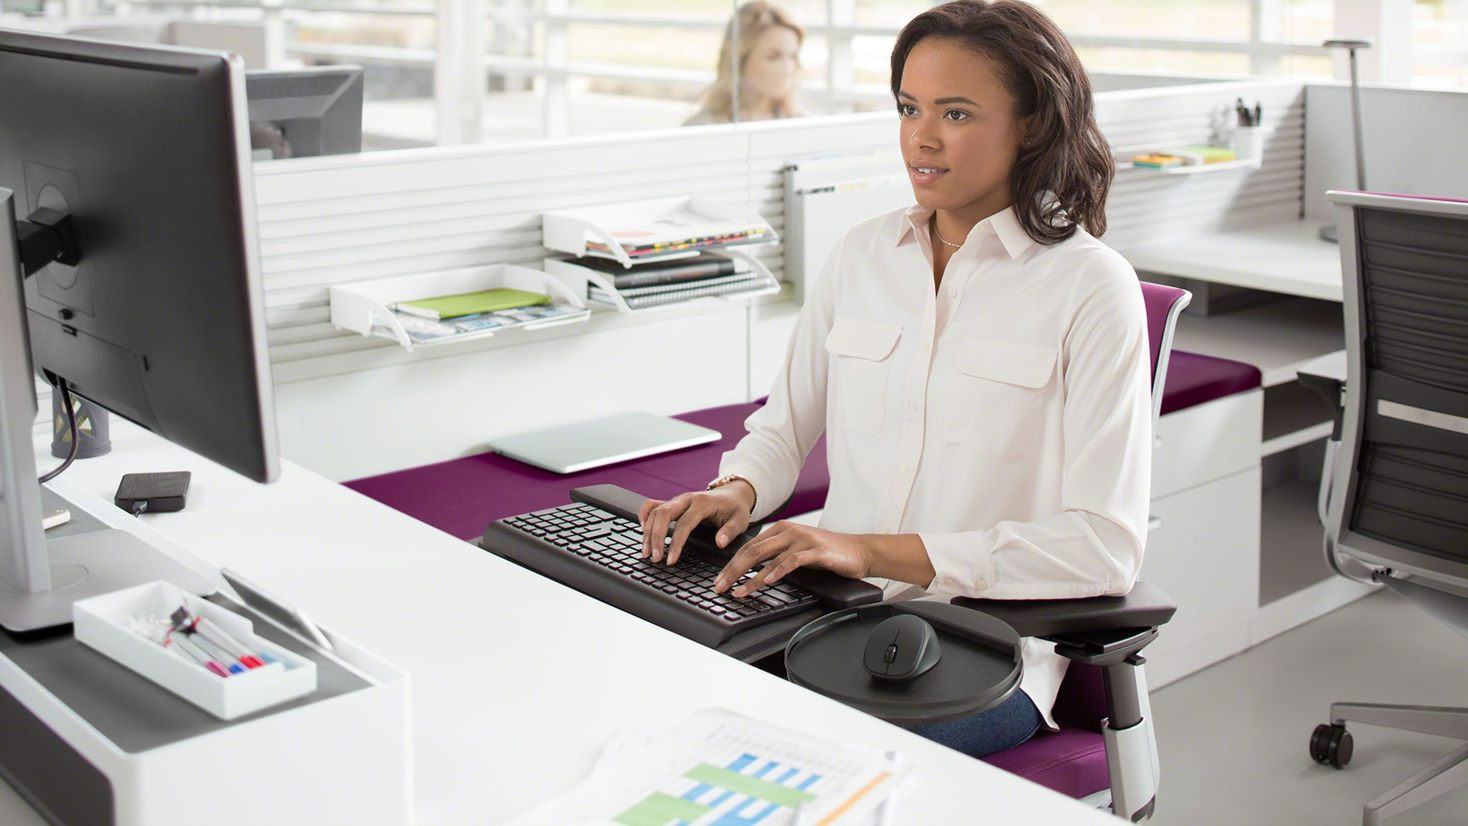 A woman typing at a workstation with a keyboard tray with a mouse and keyboard.